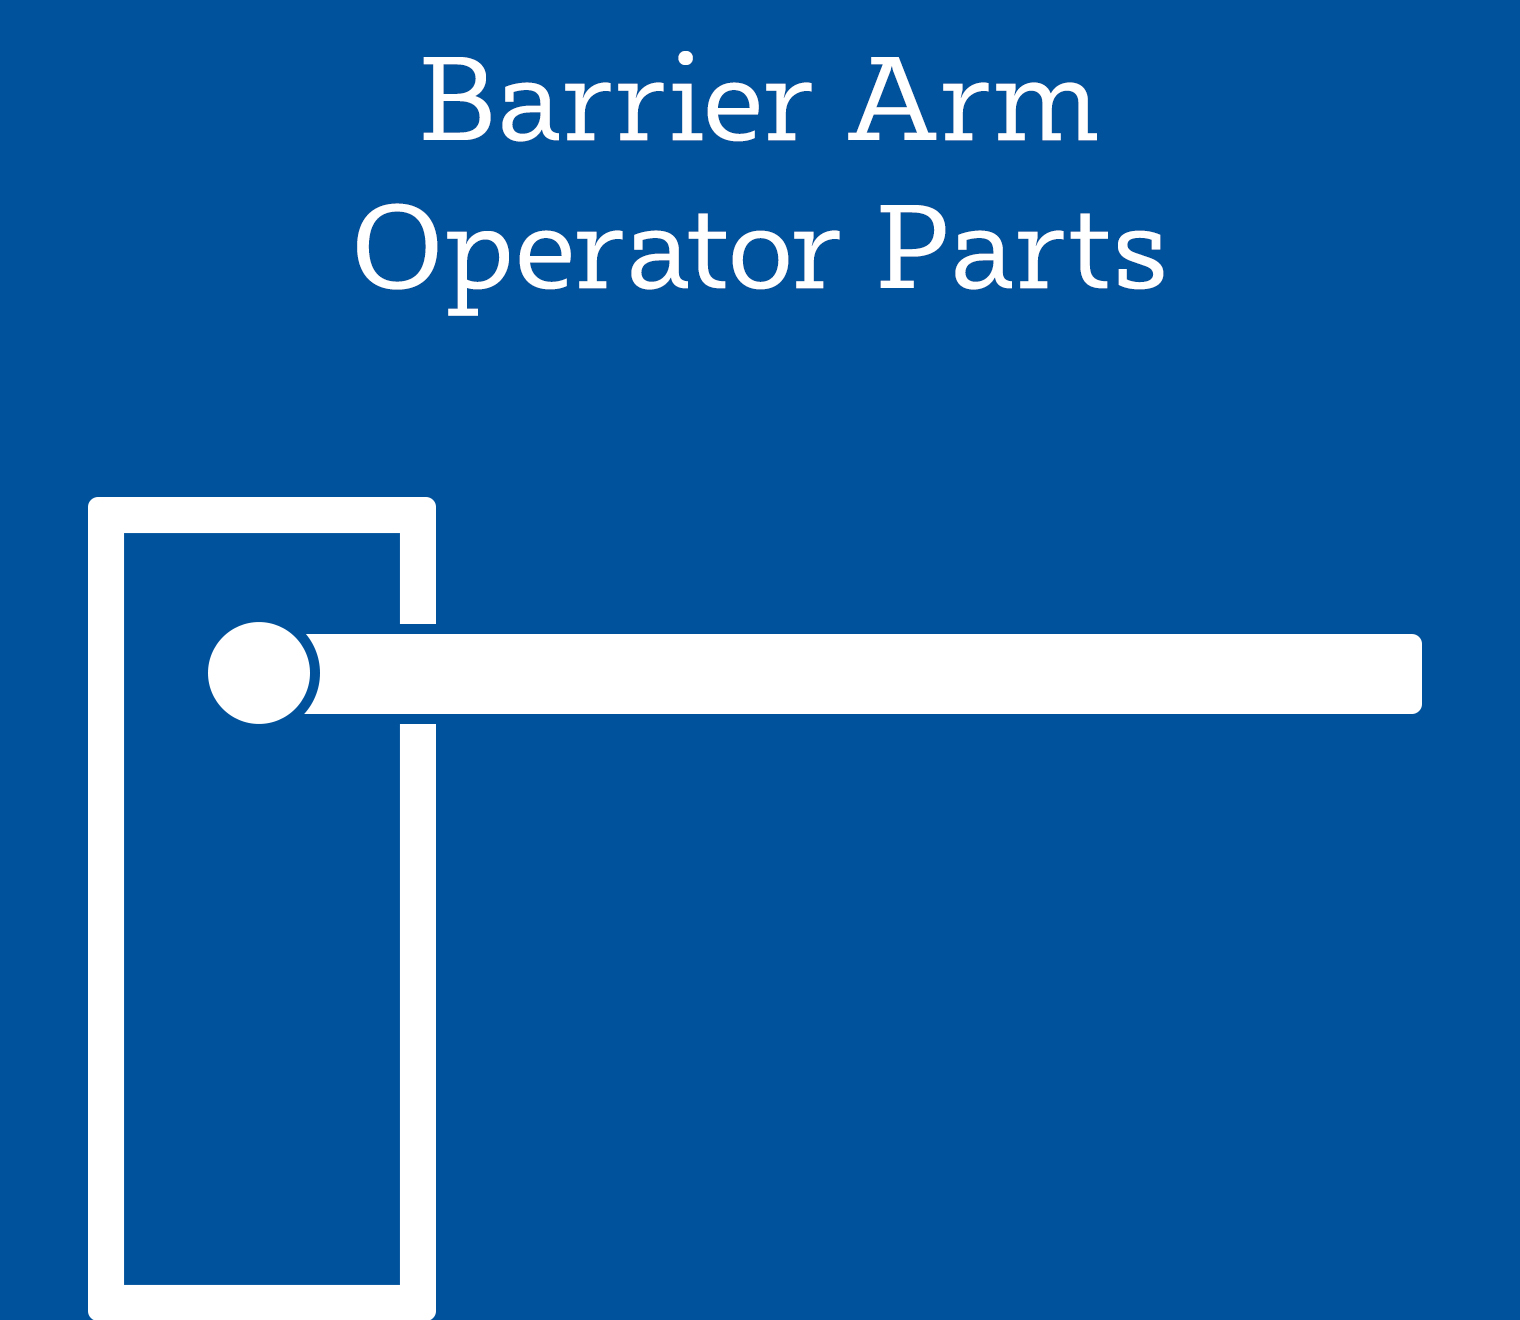 Shop Barrier Arm Operator Parts